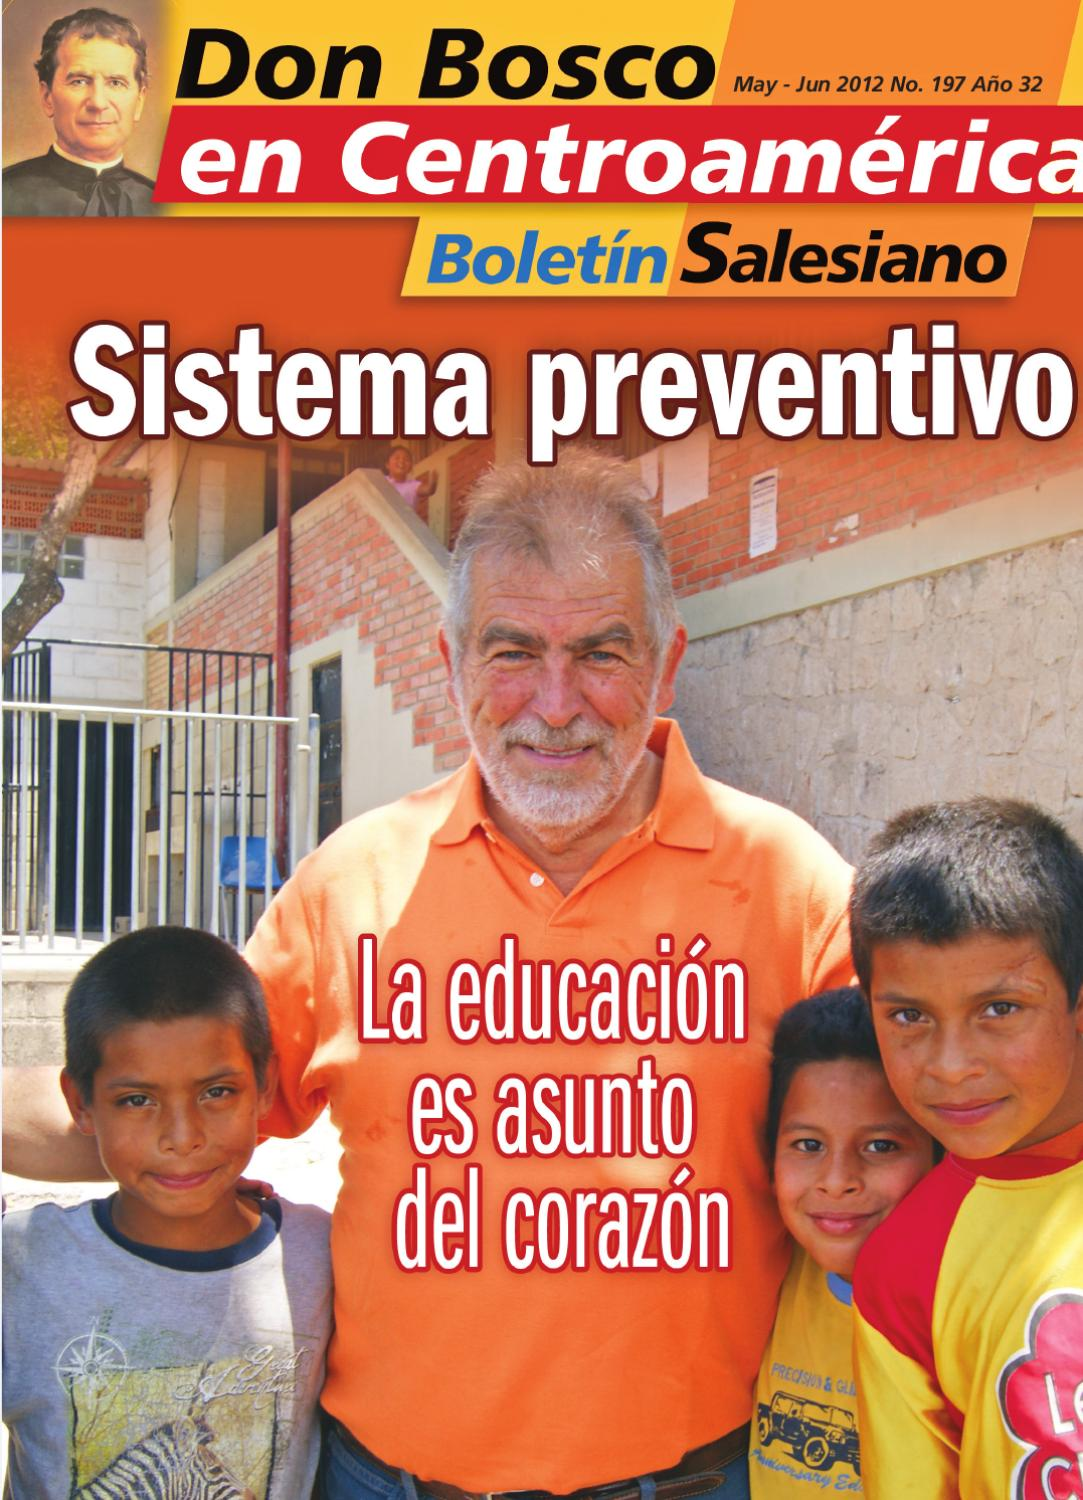 Libros De Don Bosco Boletin Salesiano 197 By Boletin Salesiano Bscam Issuu